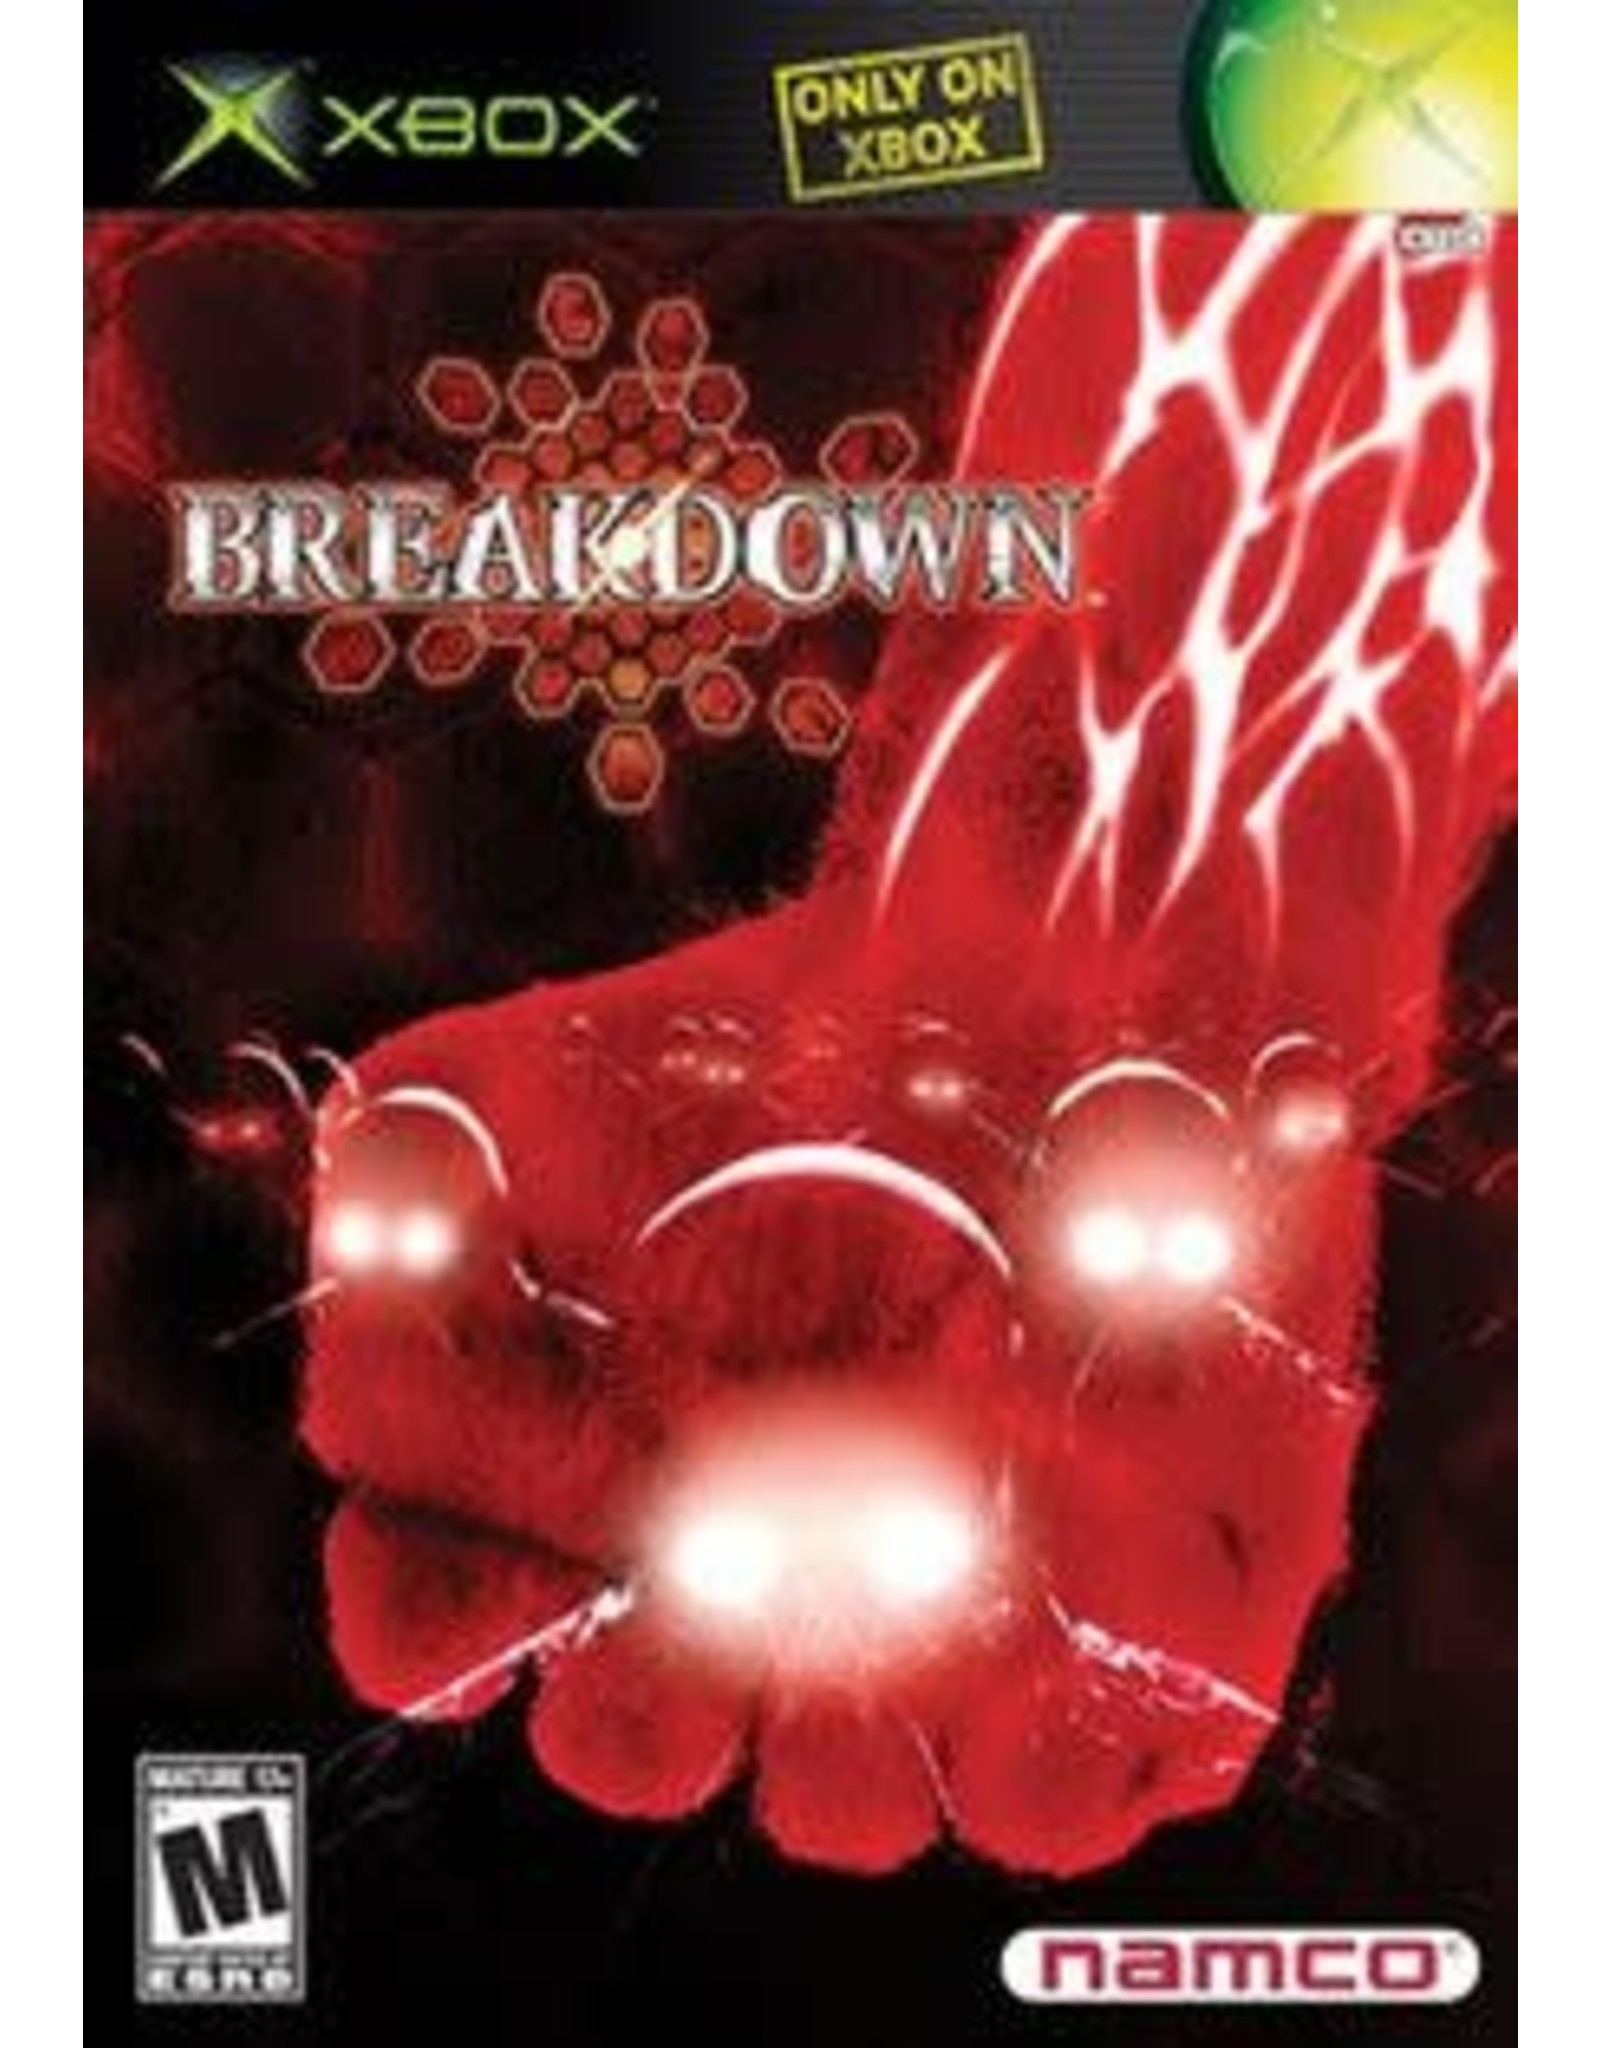 Xbox Breakdown (No Manual)